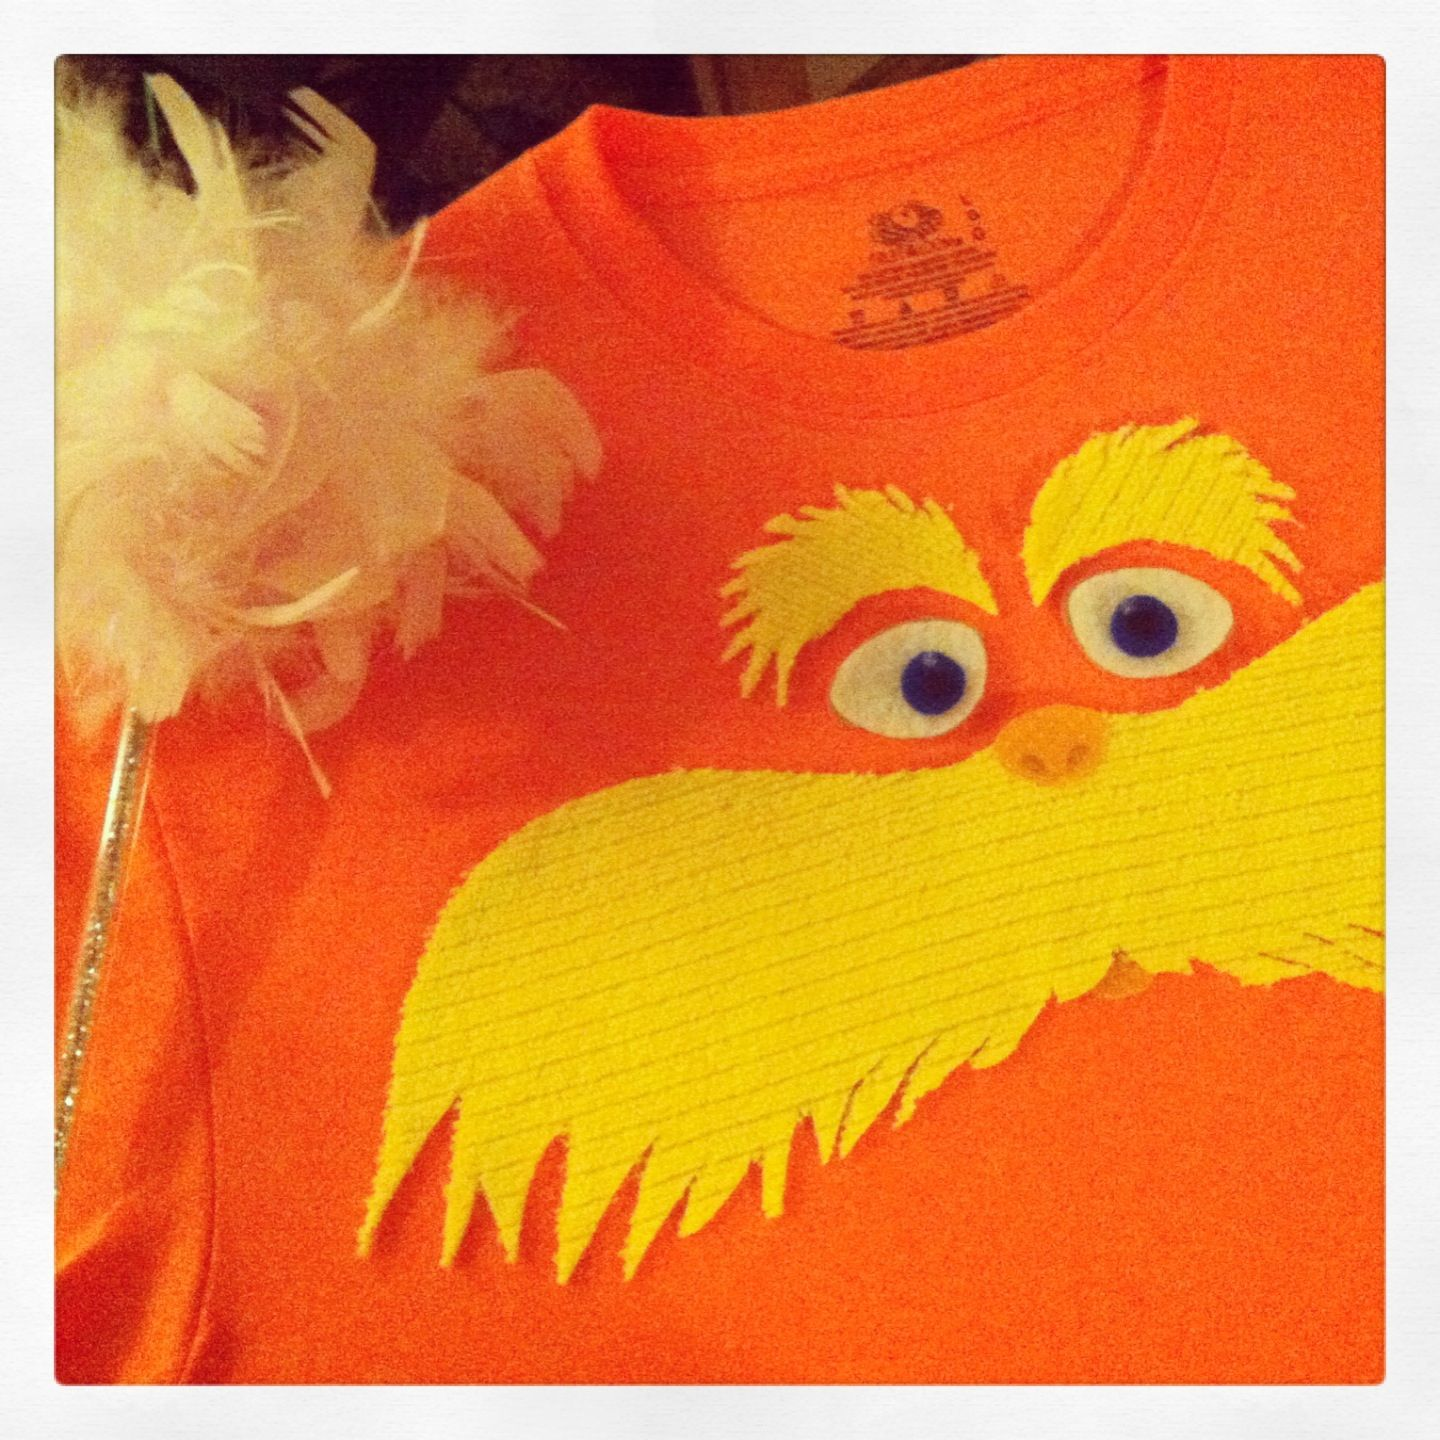 Homemade lorax tshirt made from felt fabric pieces cut to shape homemade lorax tshirt made from felt fabric pieces cut to shape glued with no sew iron on tape fabric adhesive perfect for dr suesss birthday solutioingenieria Choice Image